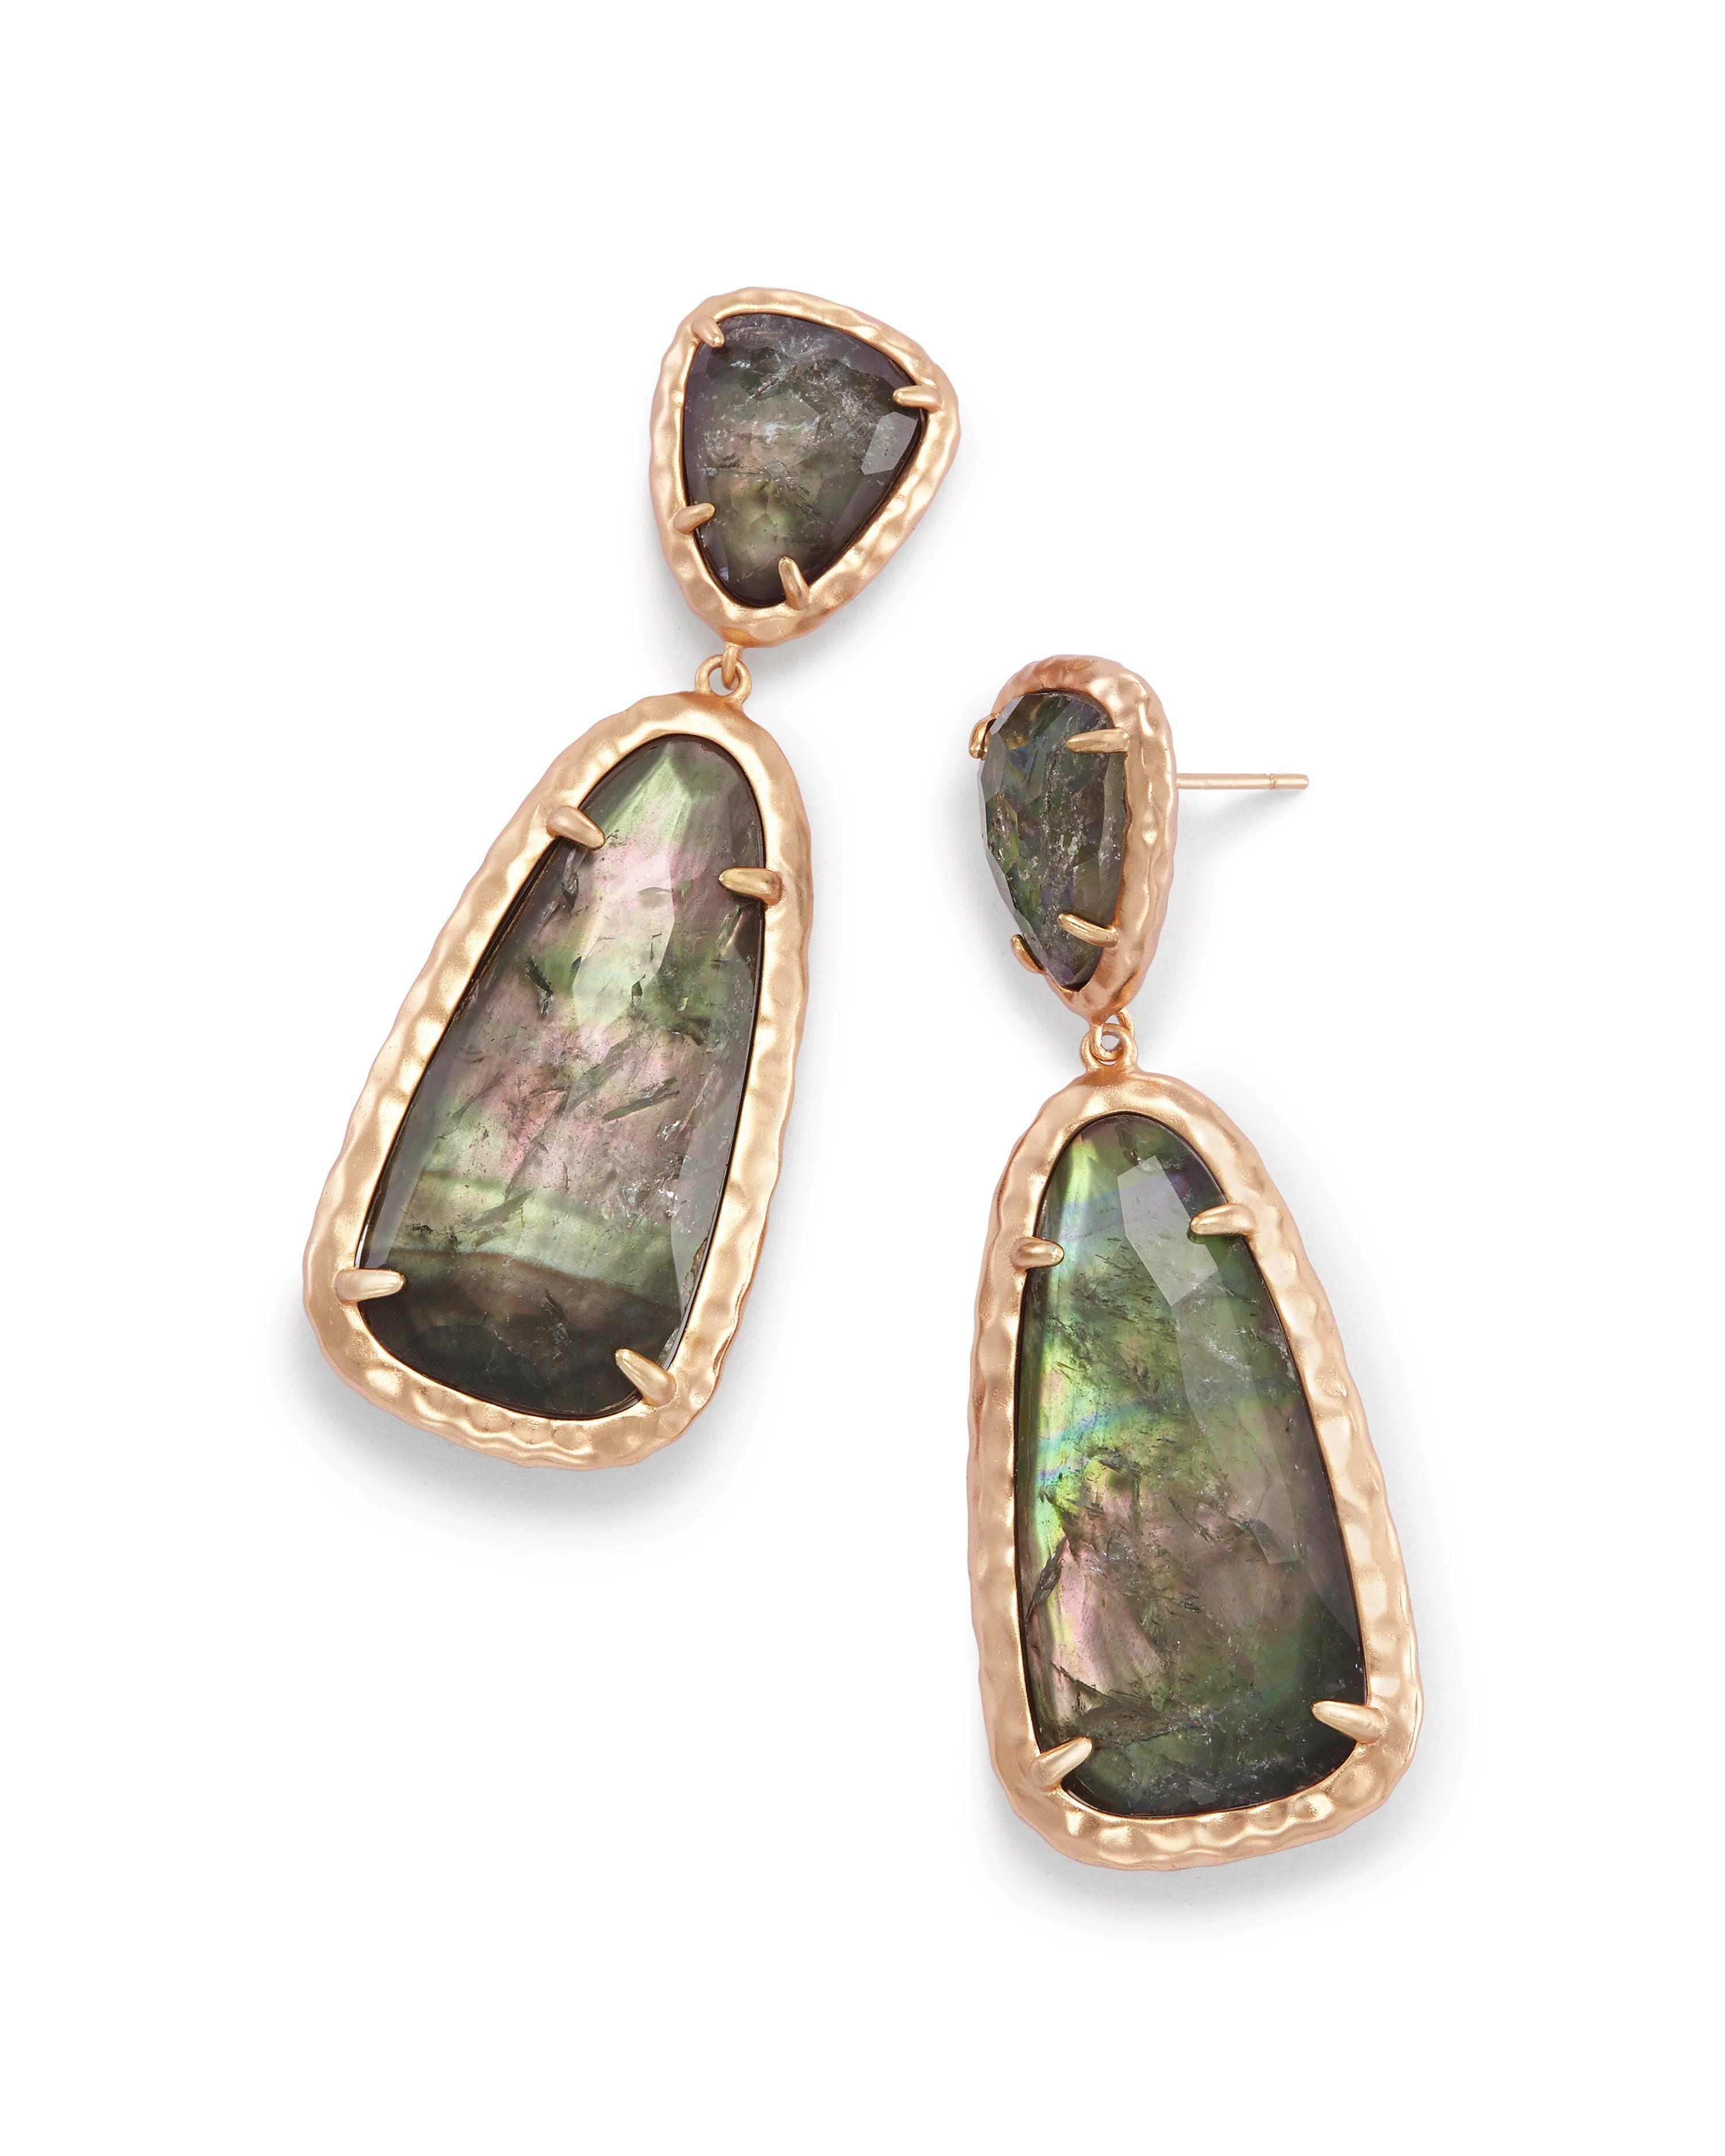 Kendra scott daria statement earrings in rose gold products